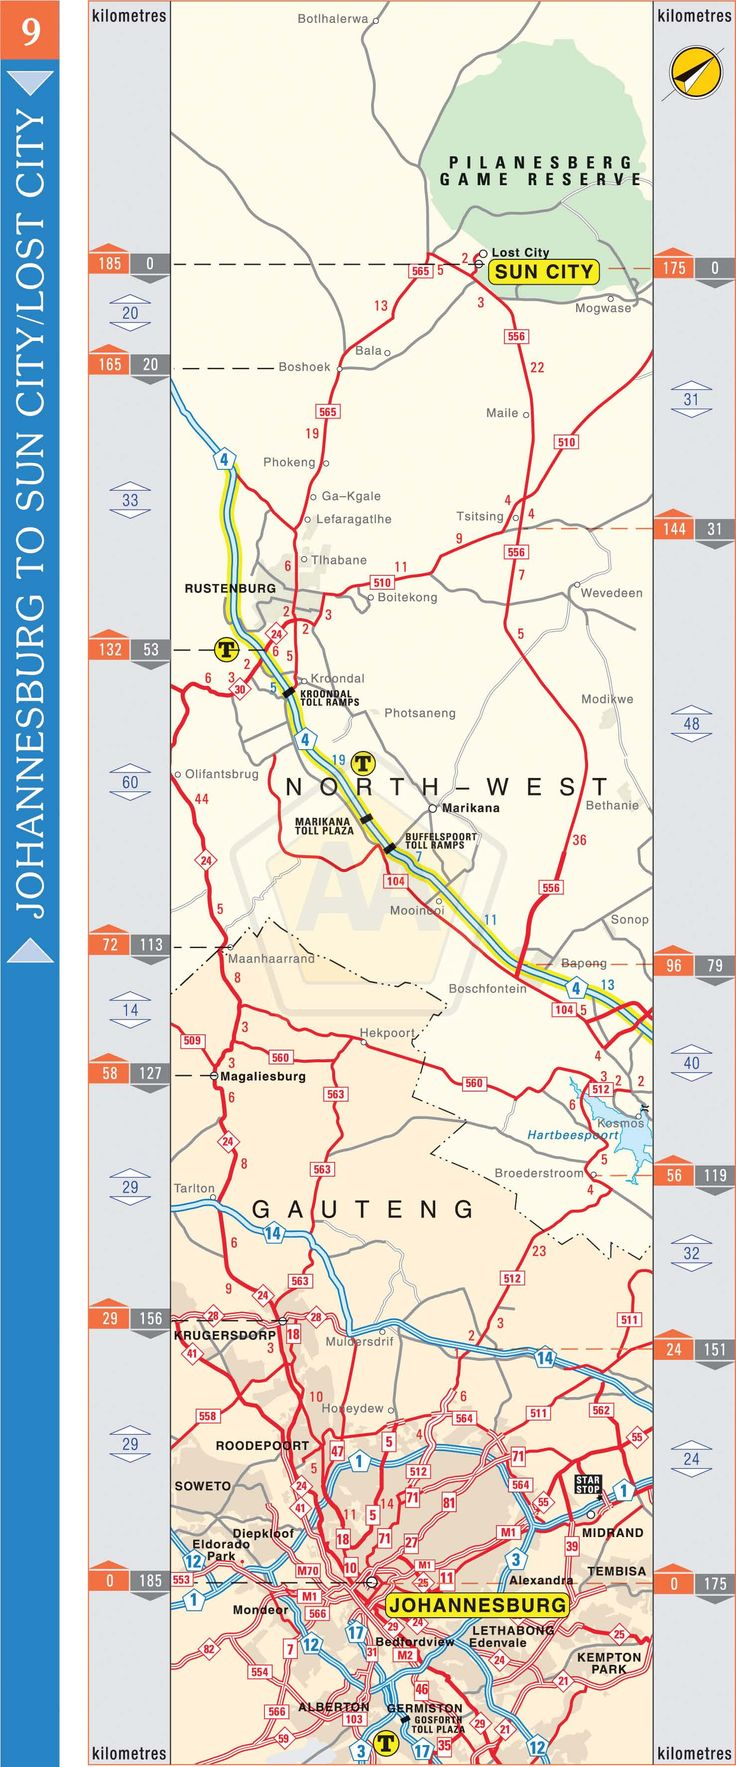 Johannesburg to Sun City via Rustenburg | Automobile Association